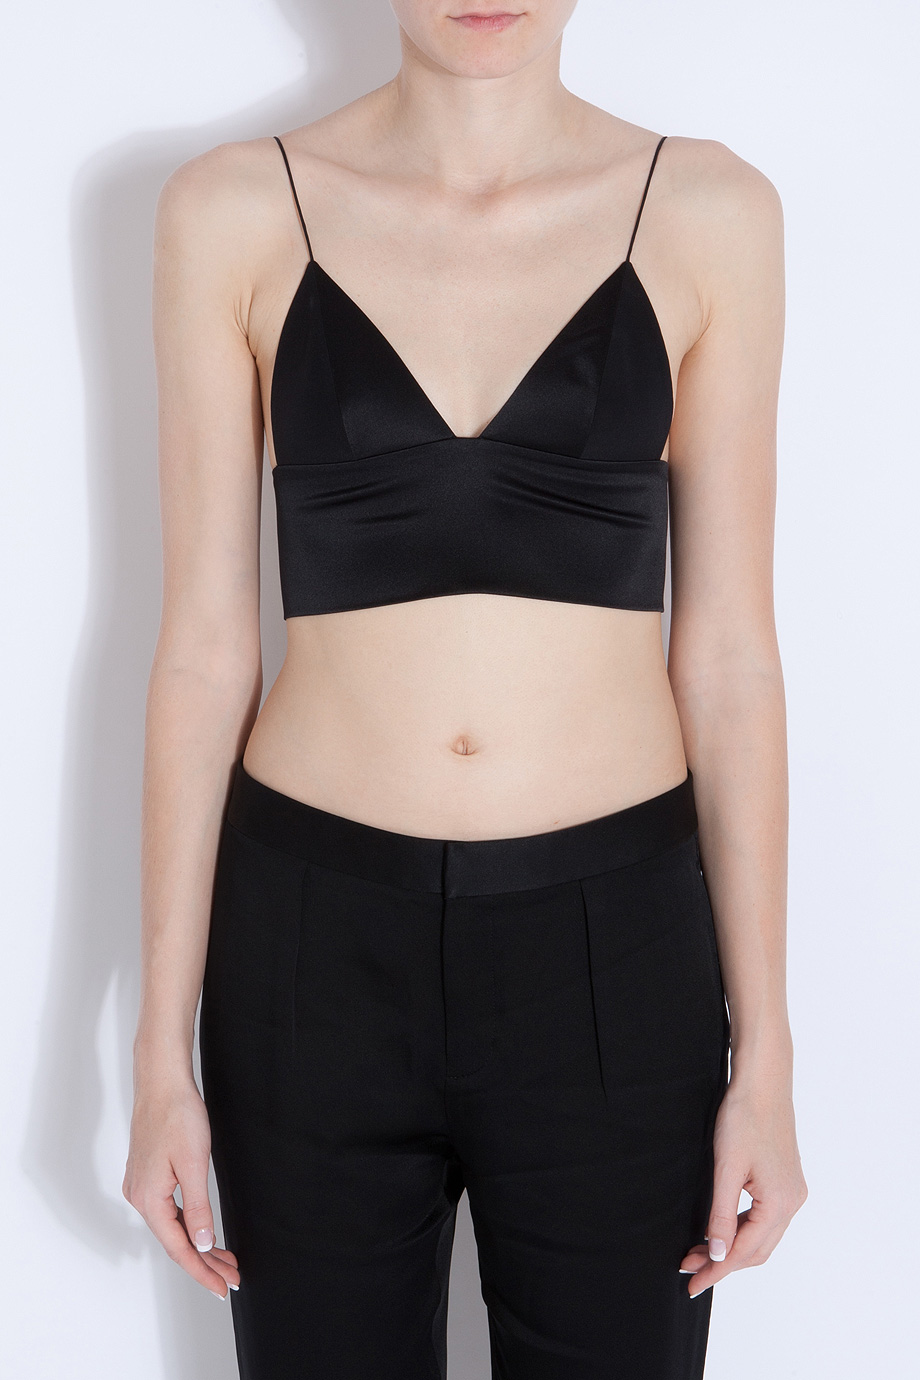 074614a367 Lyst - T By Alexander Wang Silk Satin Bralette in Black